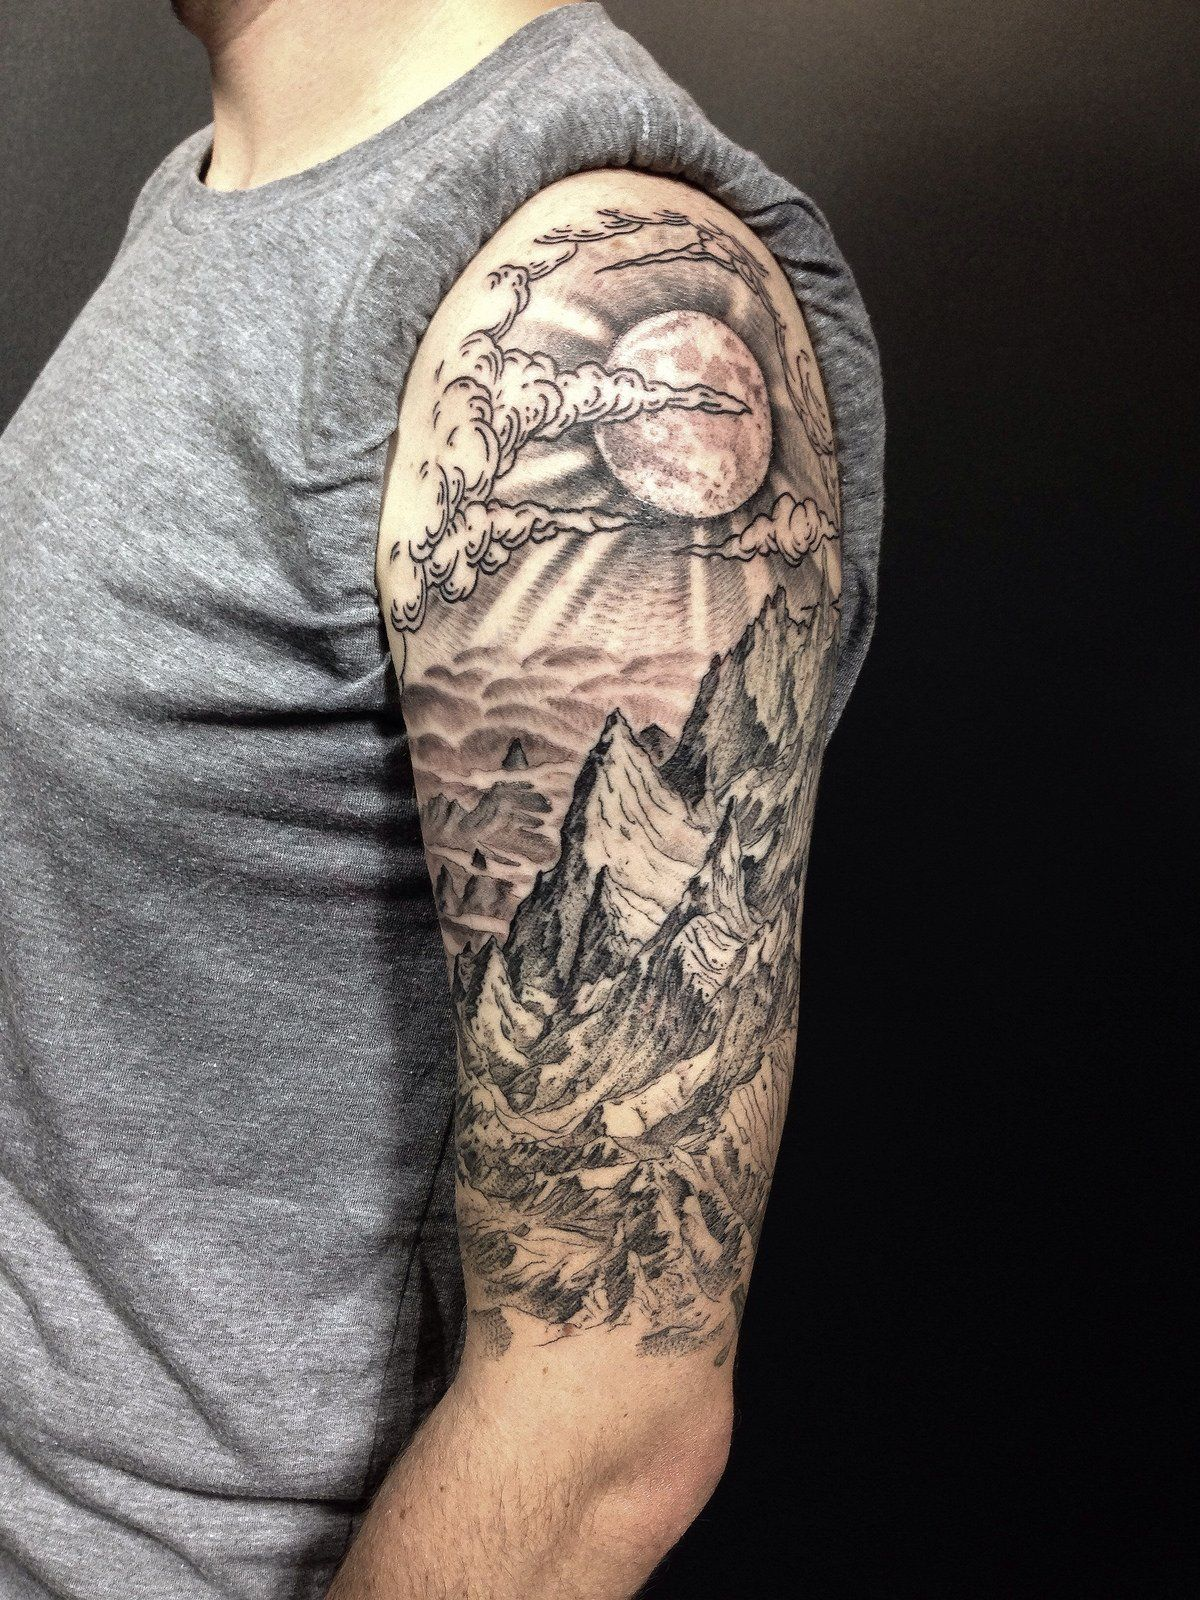 tattoo sleeve mountain nature forest arm mountains